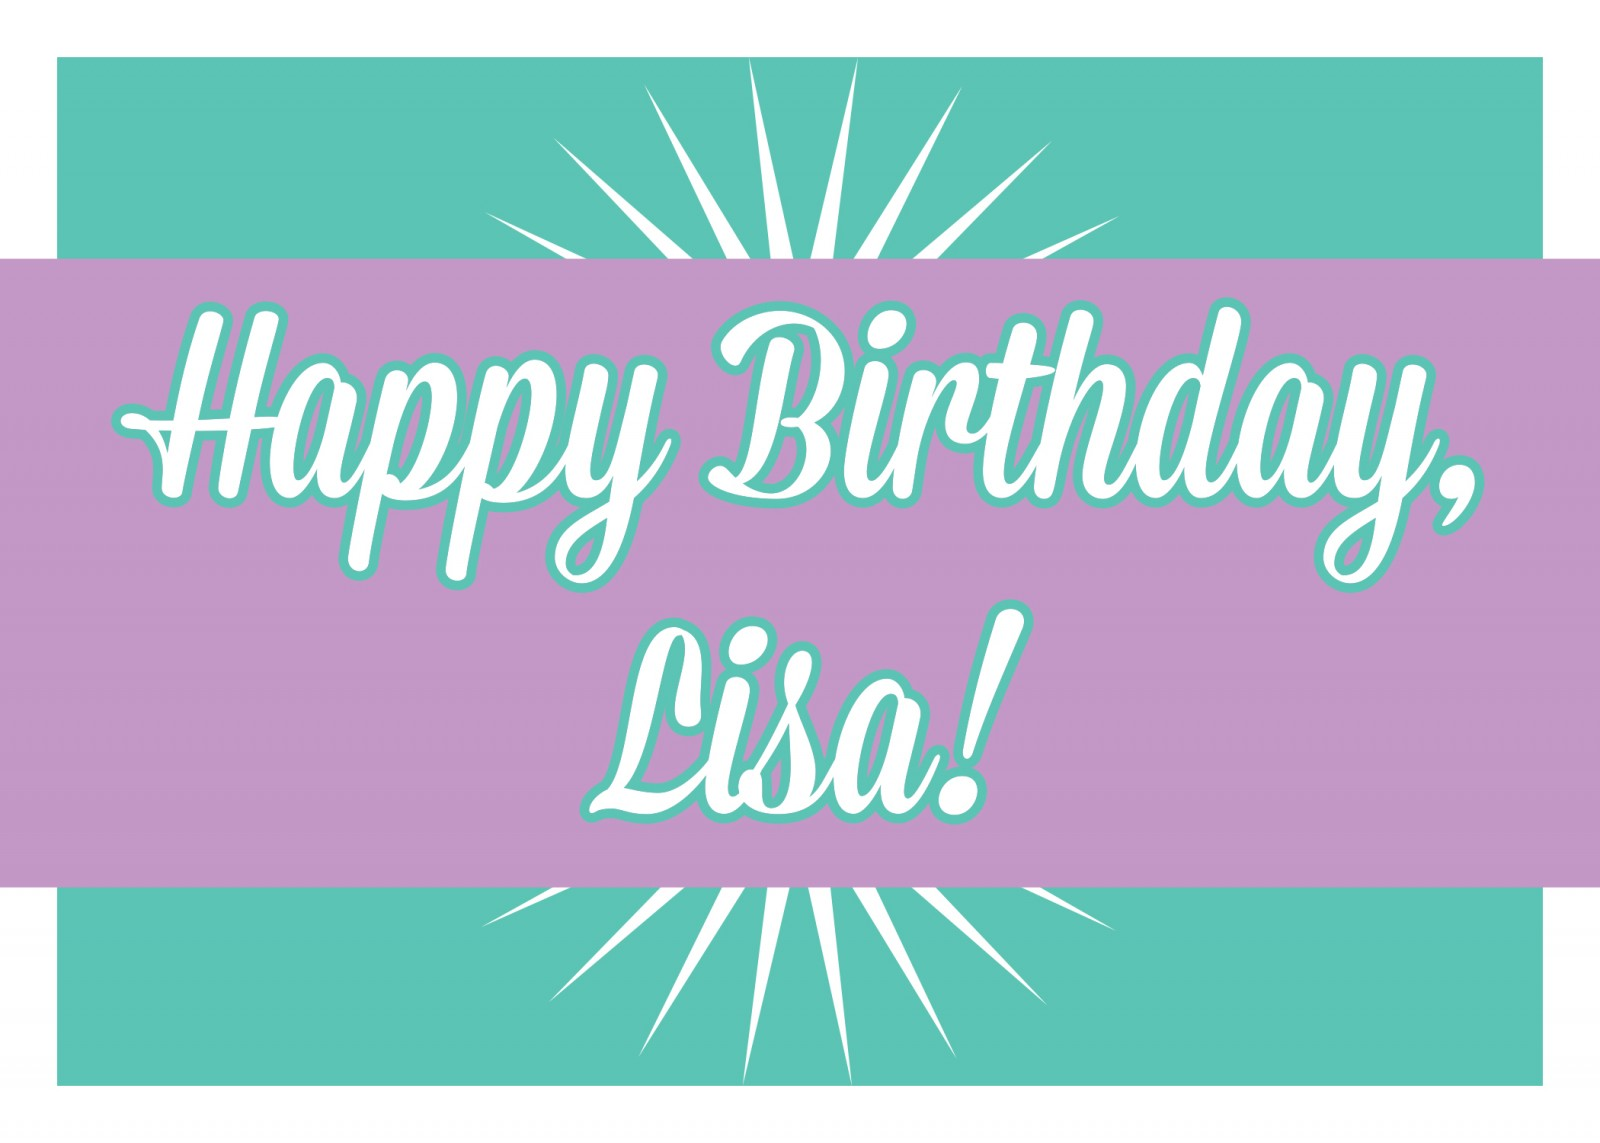 Happy Birthday, Lisa!   OffiCenters   Innovative Office, CoWorking